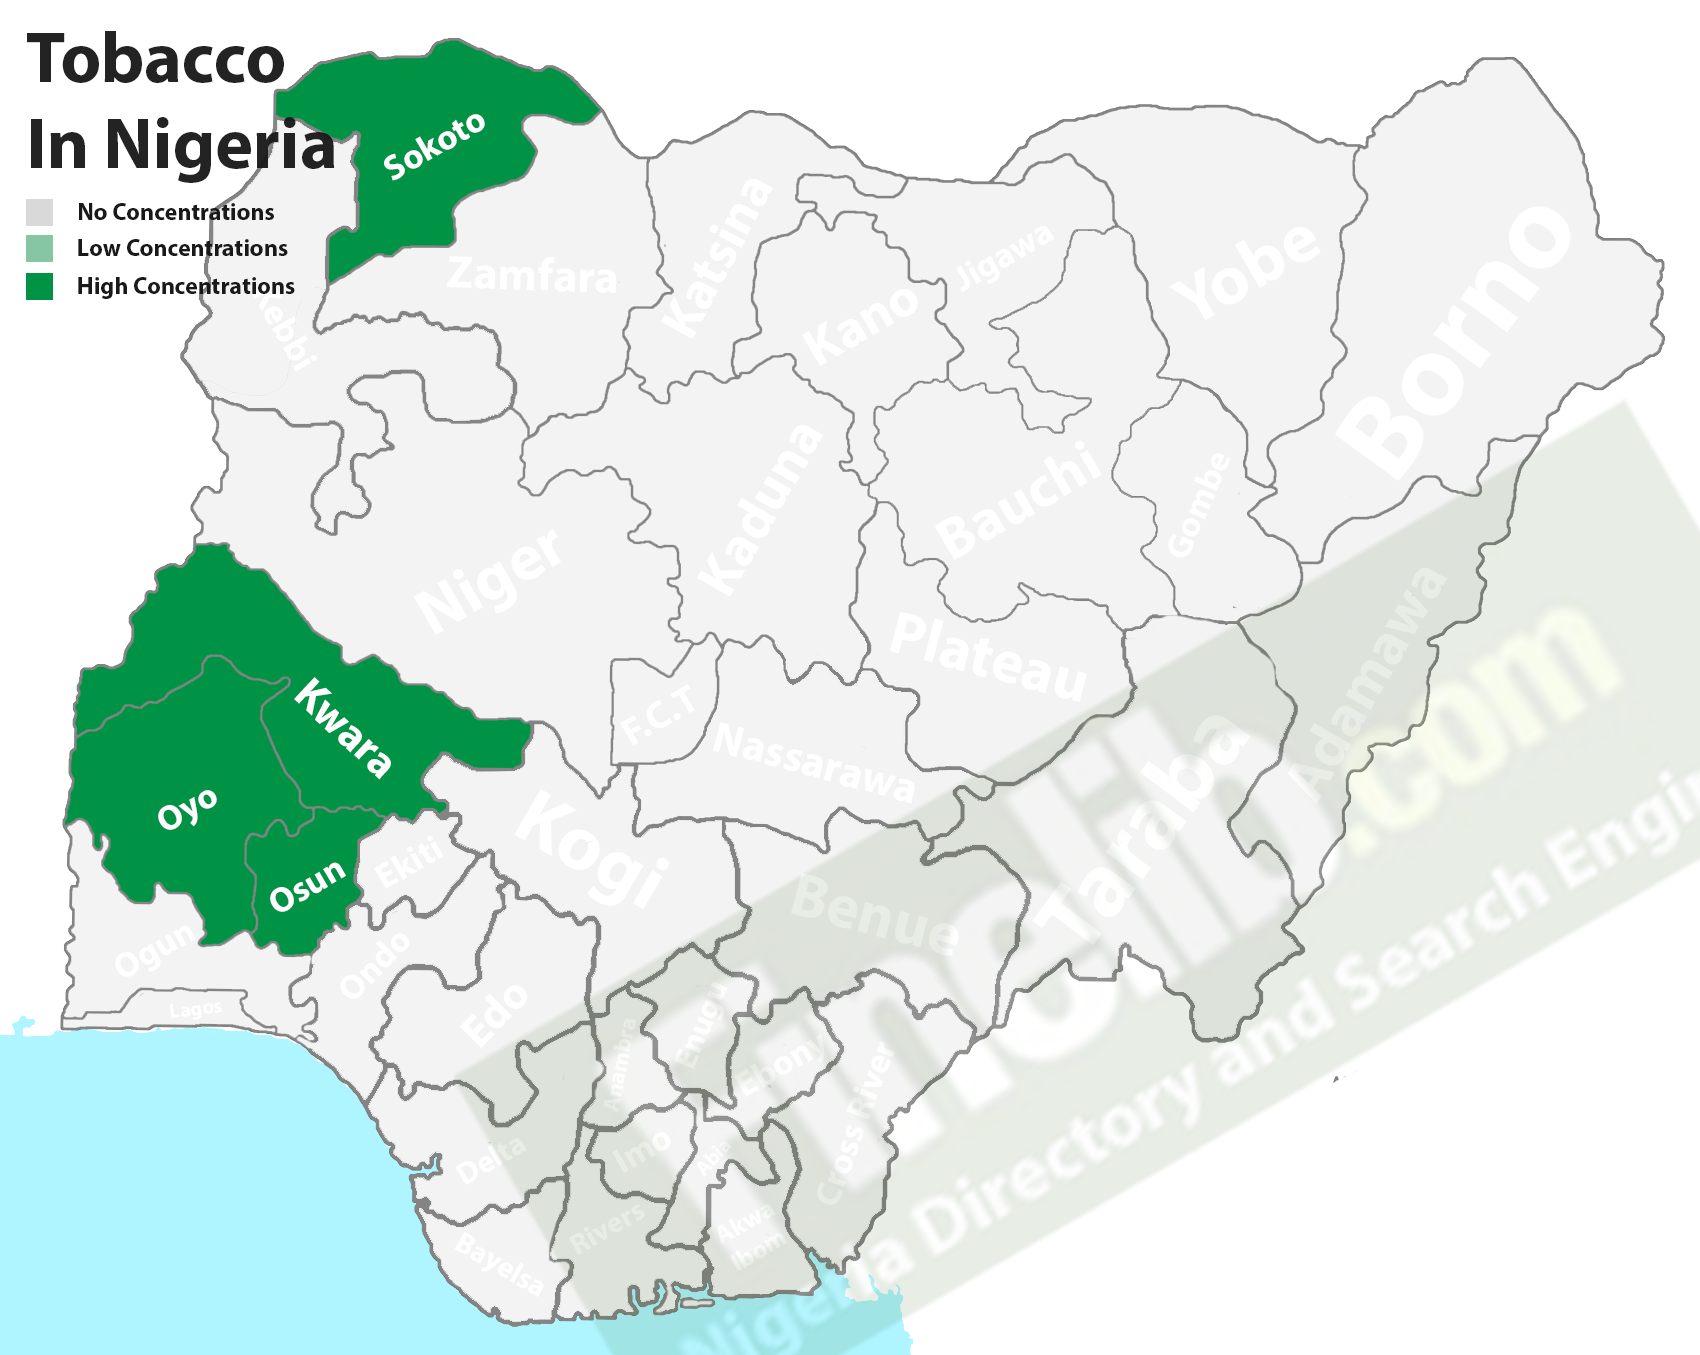 Tobacco producing states in Nigeria